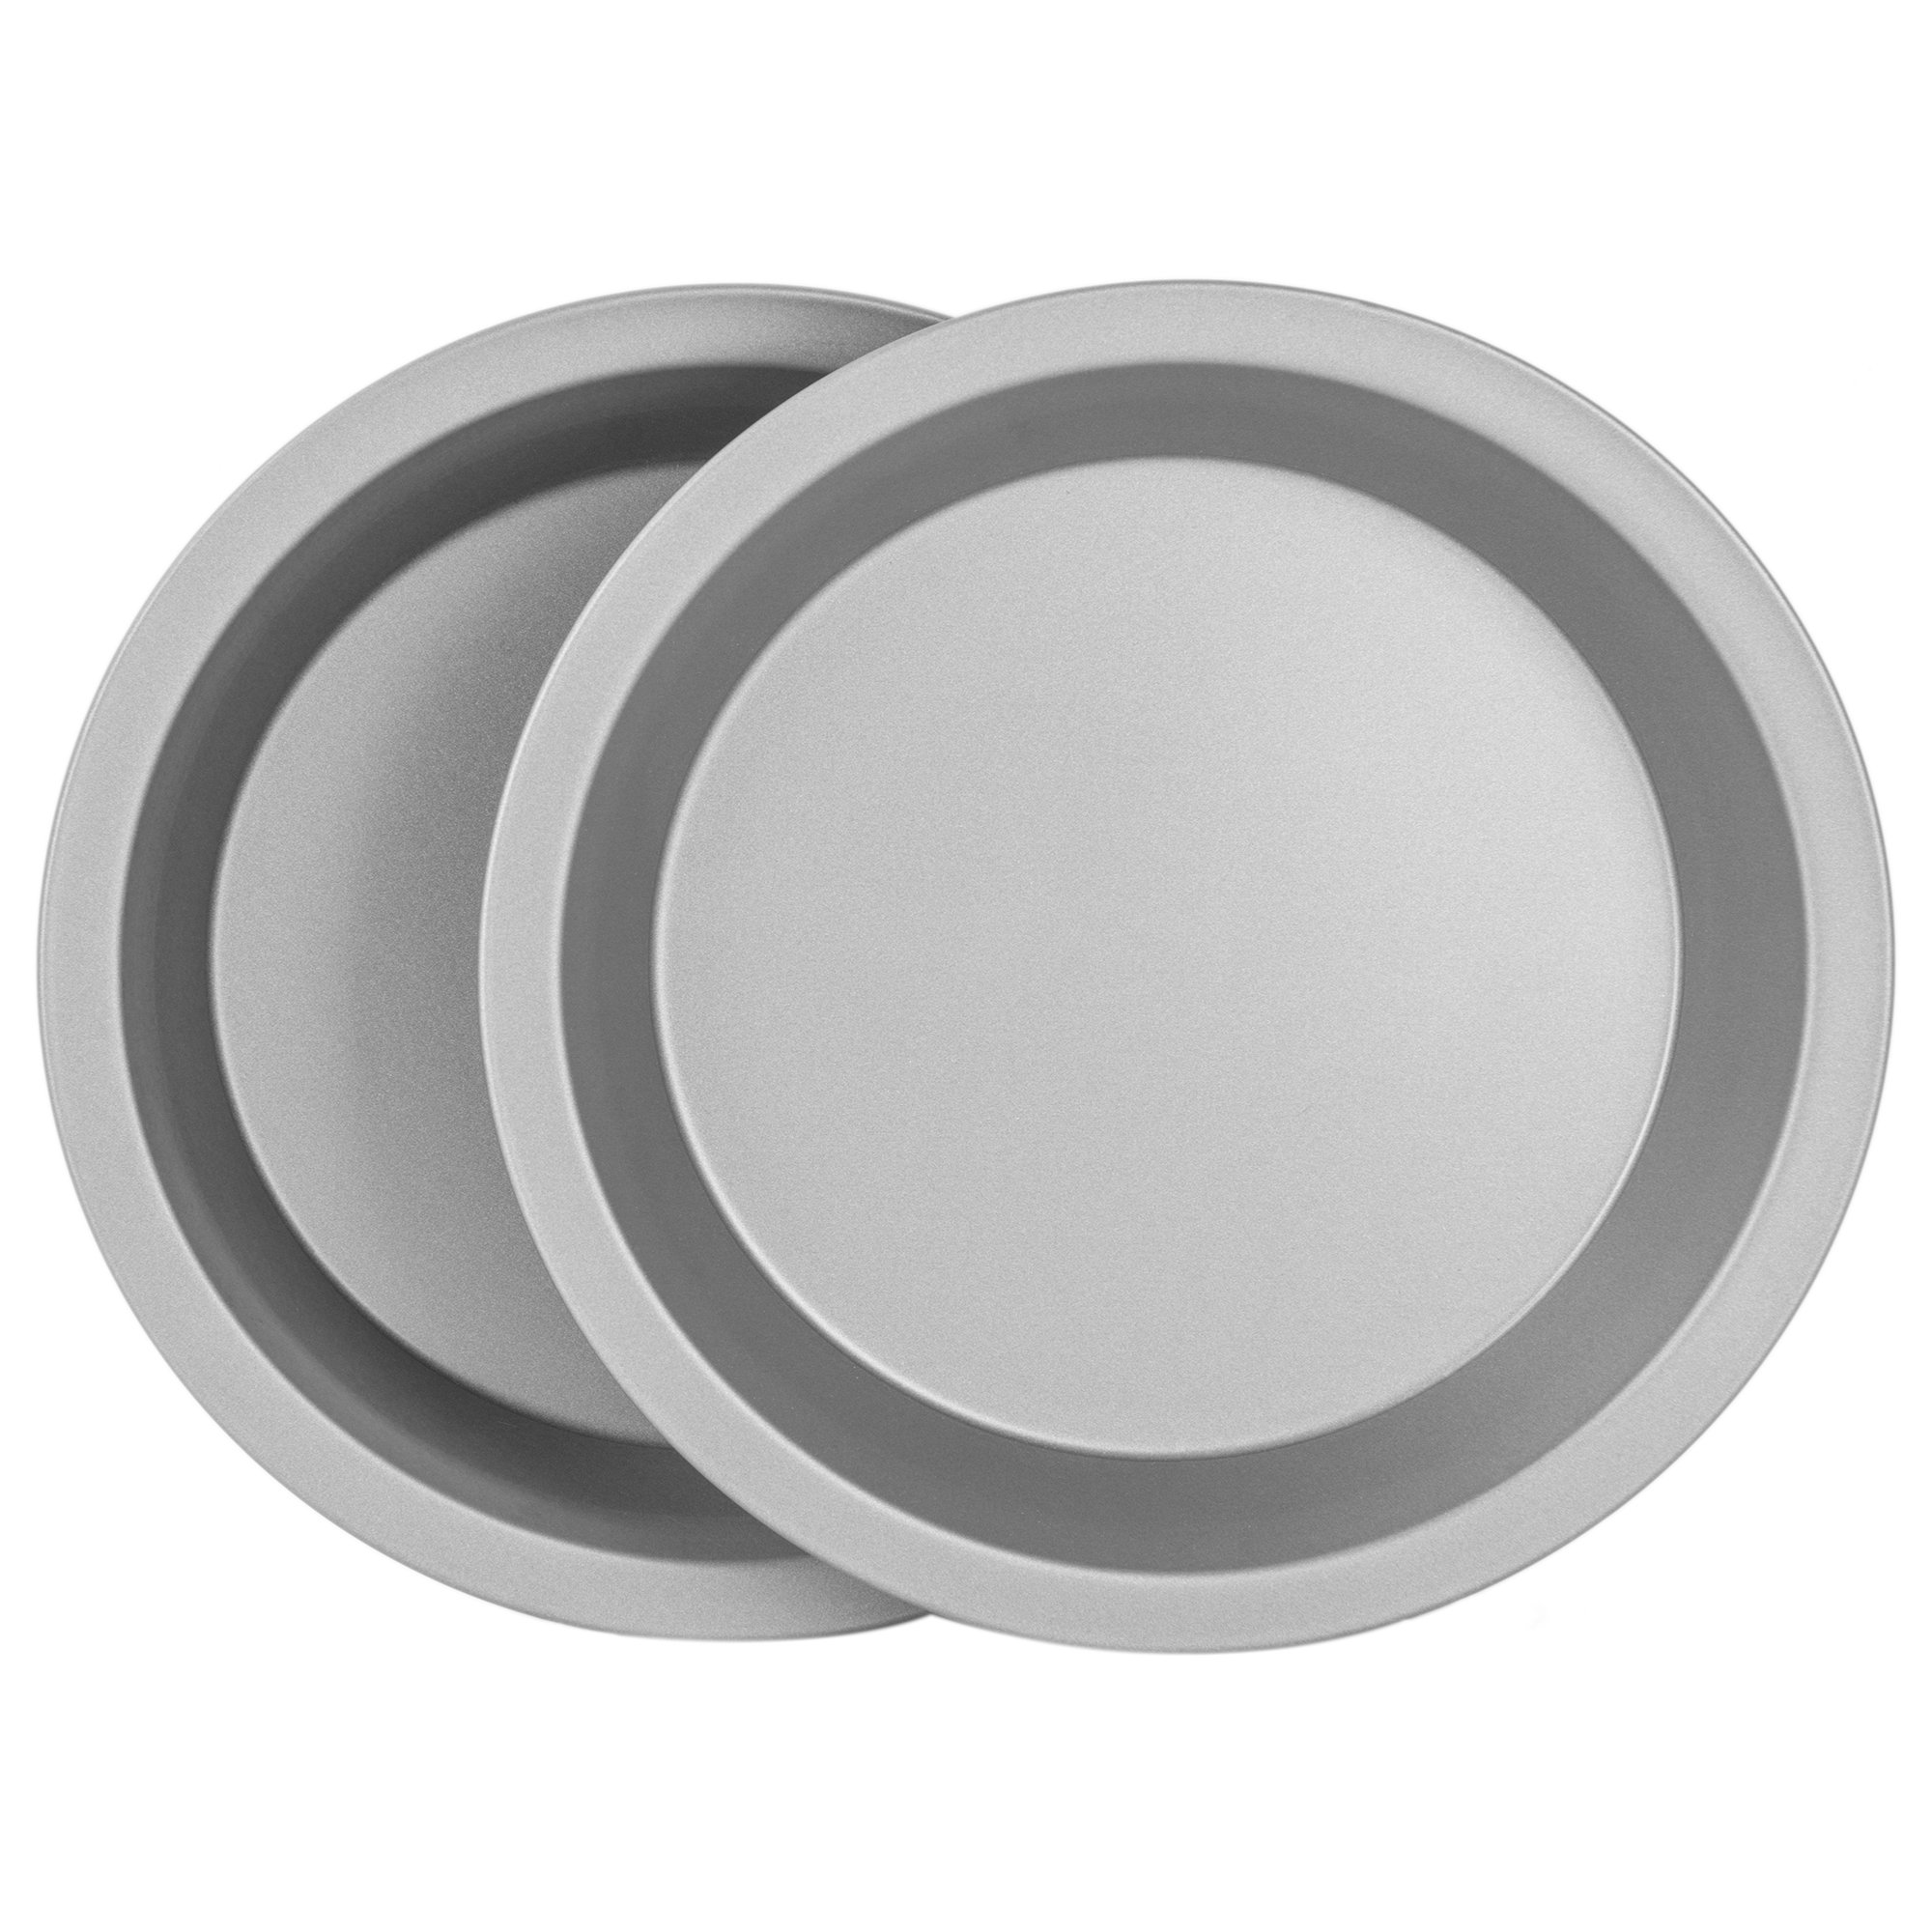 """OvenStuff Non-Stick 9"""" Pie Pans, Set of Two - American-Made, Non-Stick Pie Baking Pan Set, Easy to Clean by G & S Metal Products Company (Image #5)"""